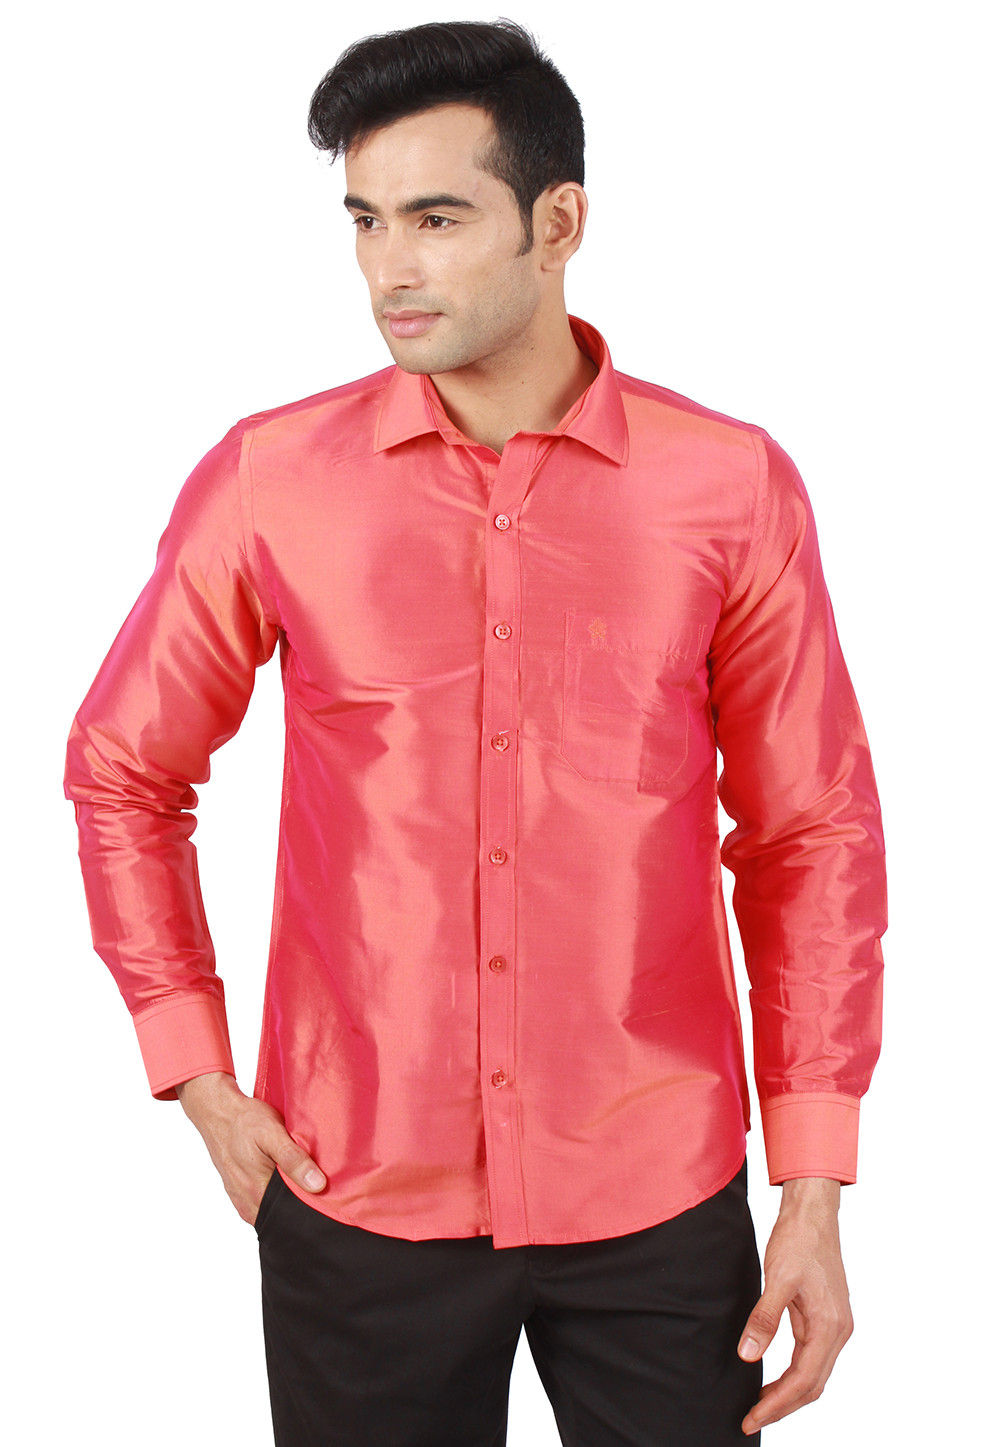 Solid Color Raw Silk Shirt In Coral Pink Mxt21